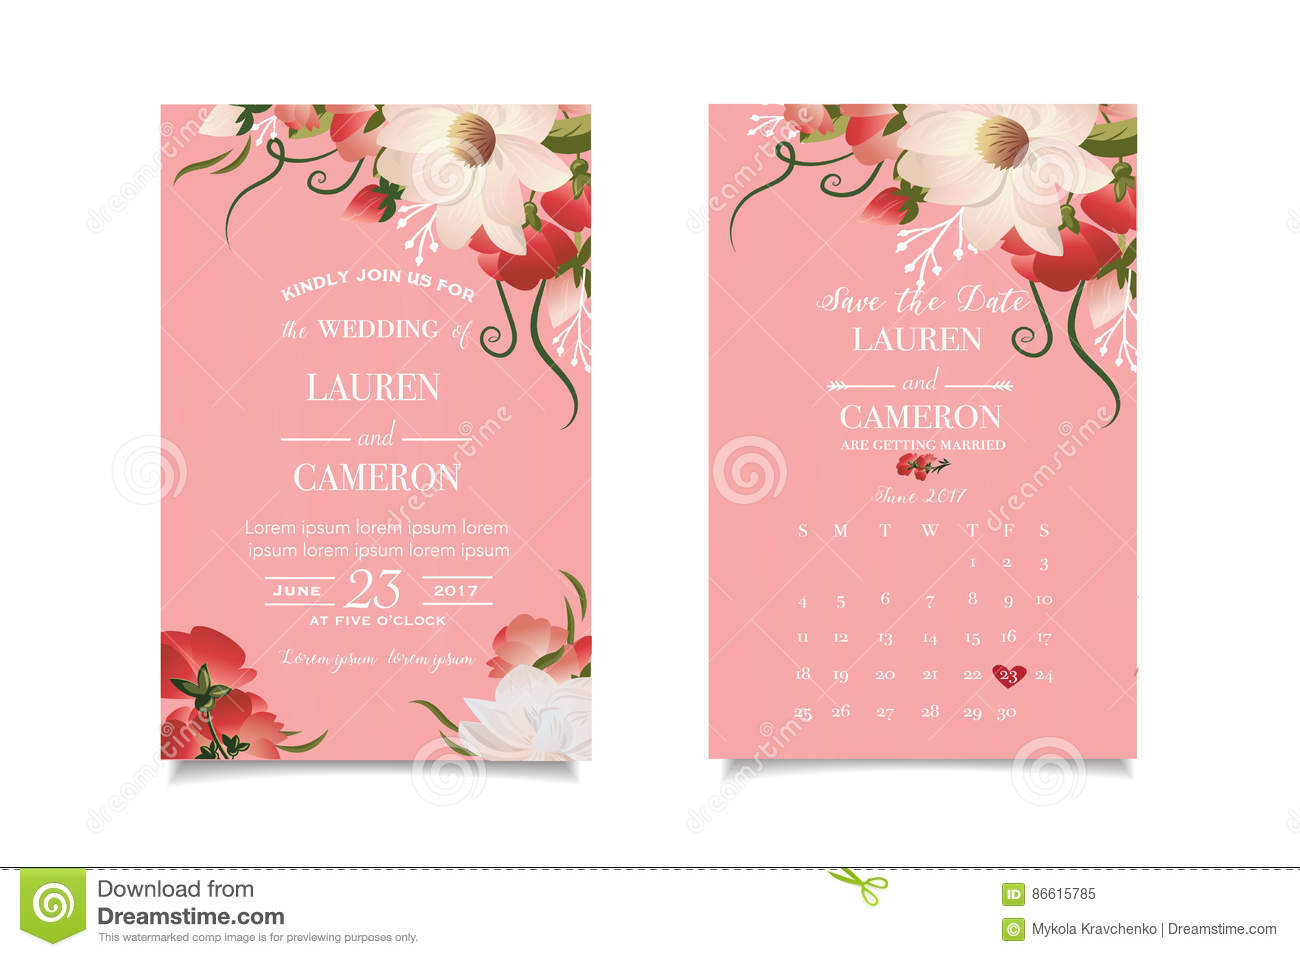 Light Pink Wallpaper Watercolor Flowers White Calligraphic Text Wedding Design